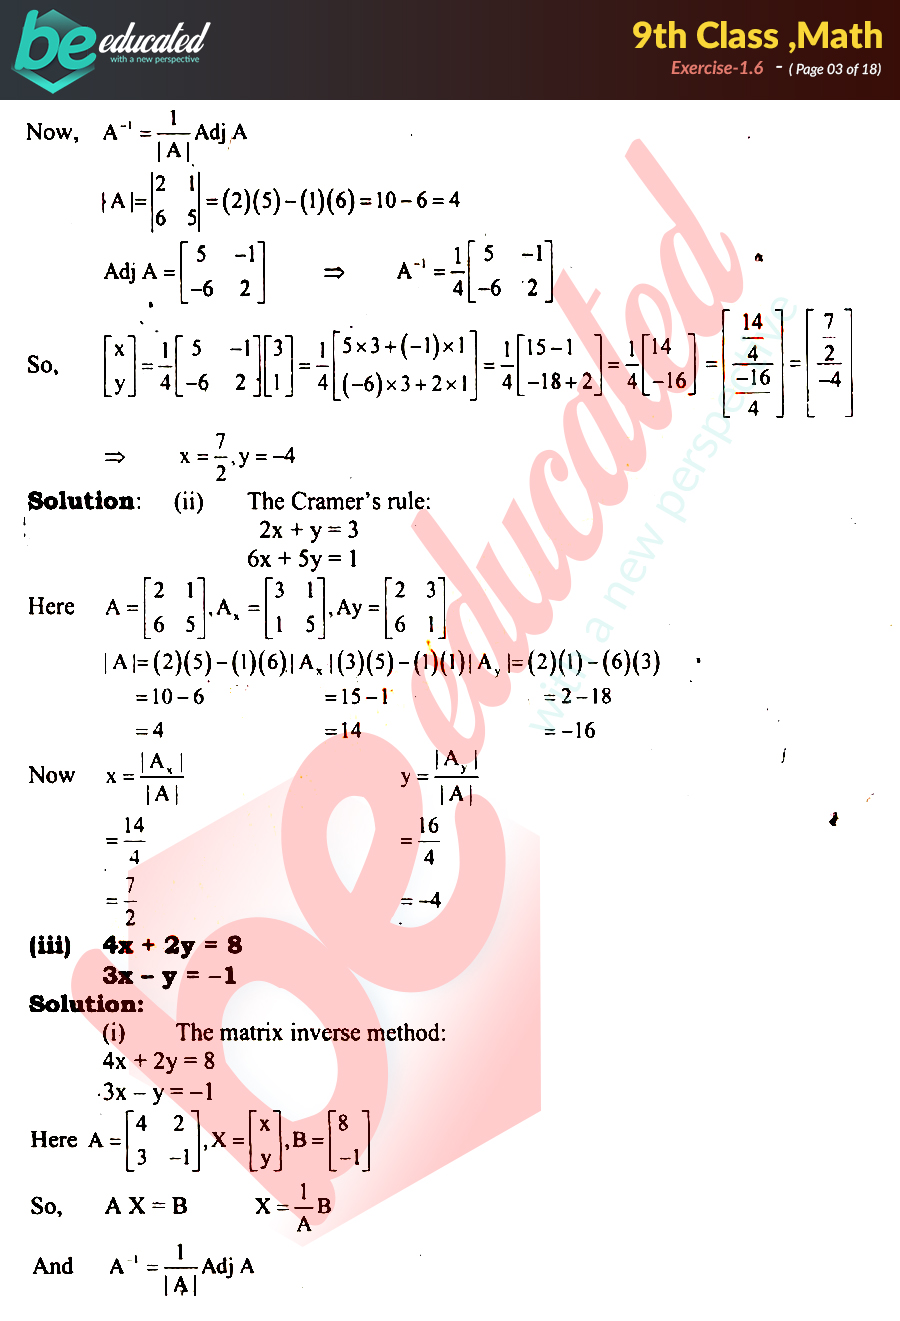 Exercise 1.6 Math 9th Class Notes - Matric Part 1 Notes